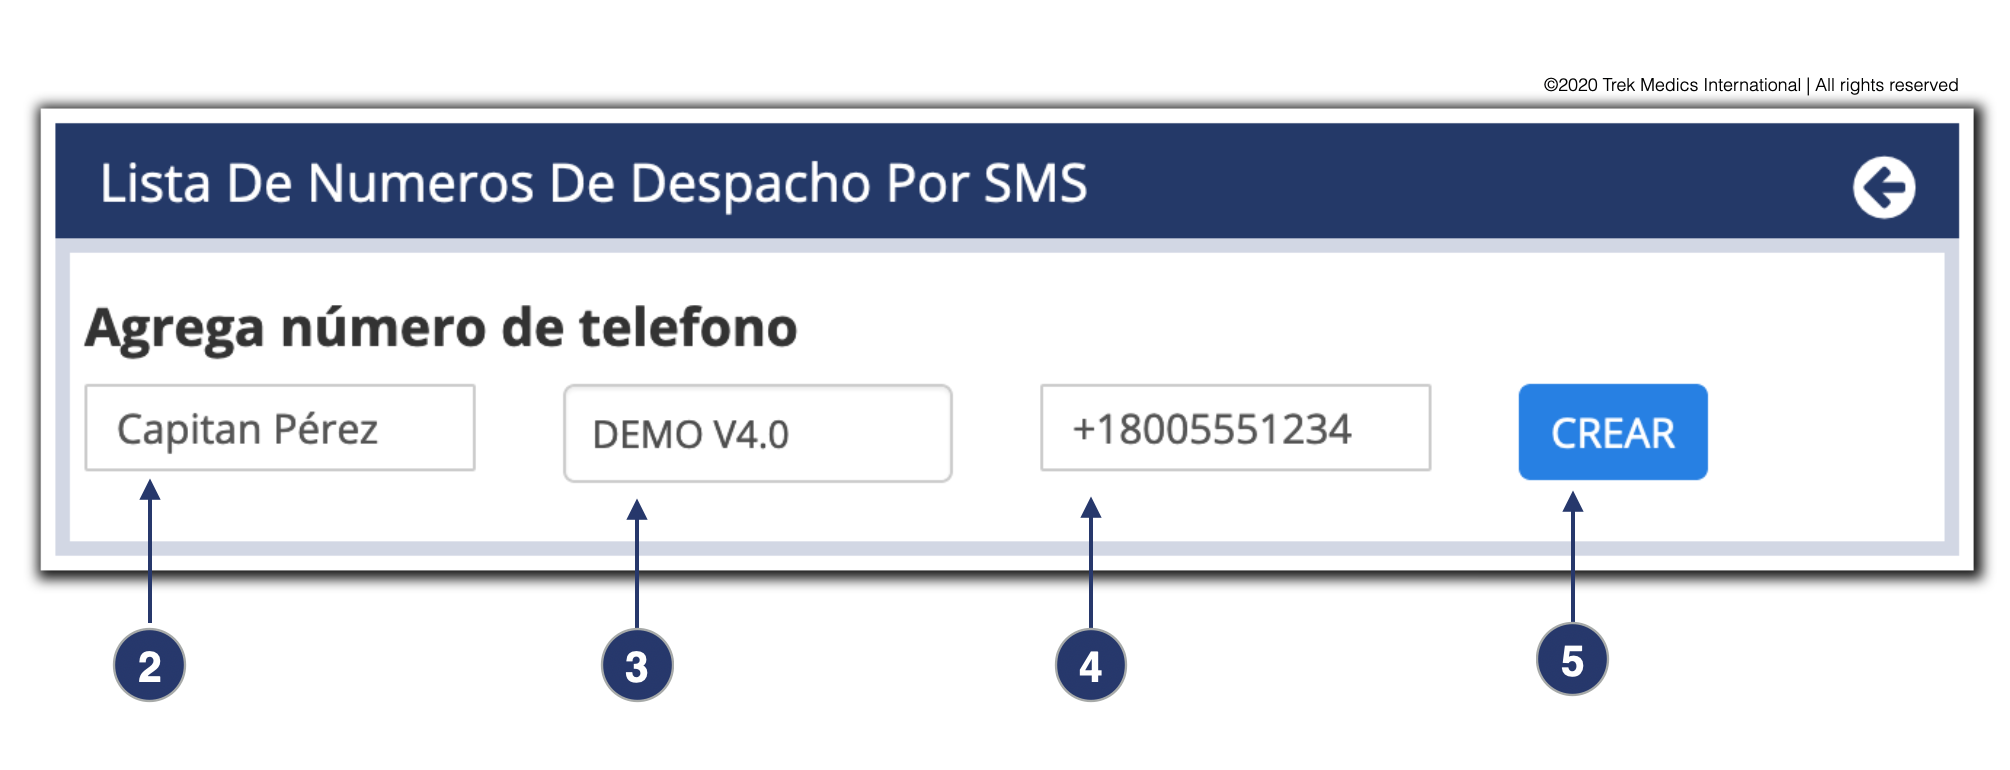 Despachadores via SMS2 - Guía Despachador - Despacho de Beacon v4.0